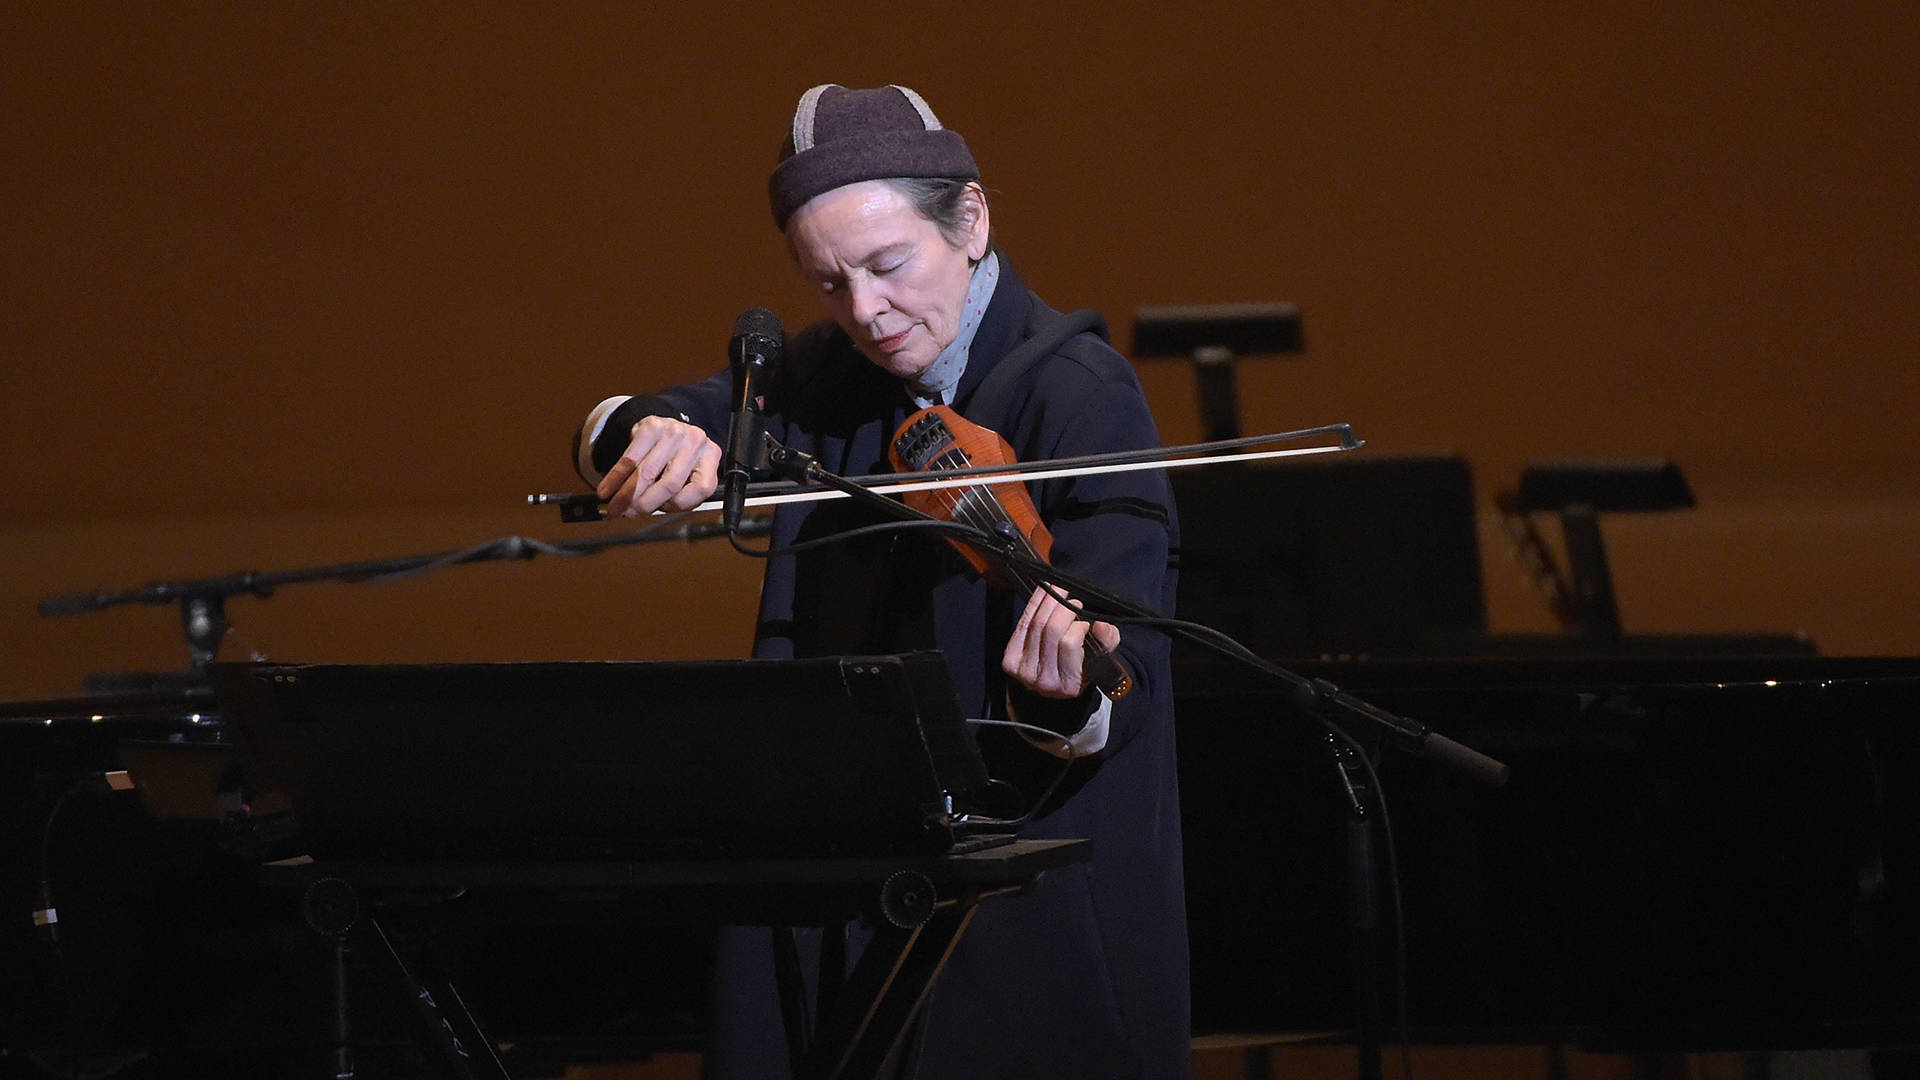 Laurie Anderson performs during the Tibet House US 30th Anniversary Benefit Concert to celebrate Philip Glass's 80th birthday at Carnegie Hall in 2017. Jason Kempin/Getty Images for Tibet House US